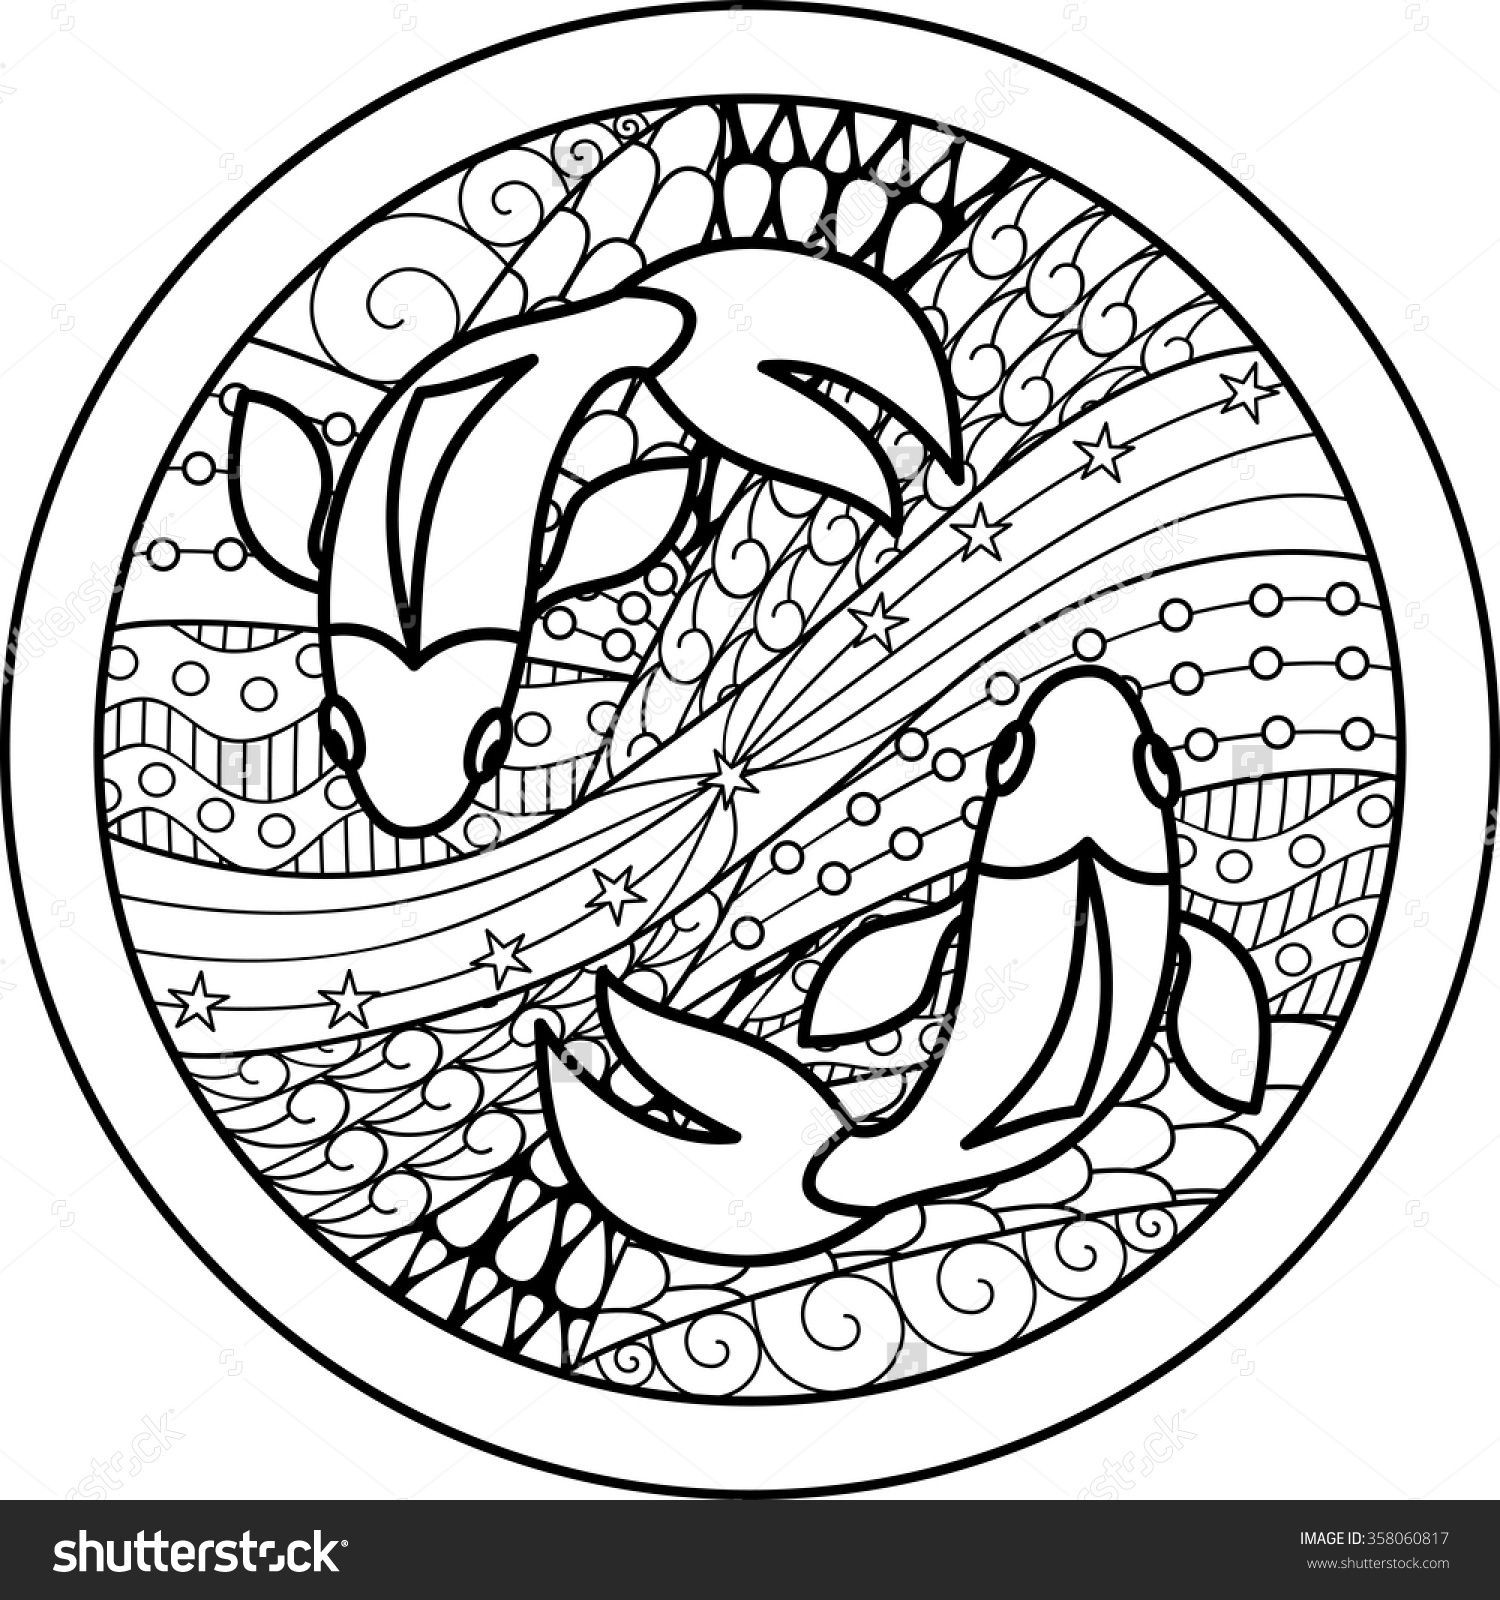 Best ideas about Zodiac Coloring Pages For Adults . Save or Pin Zodiac sign Pisces zentangle Now.